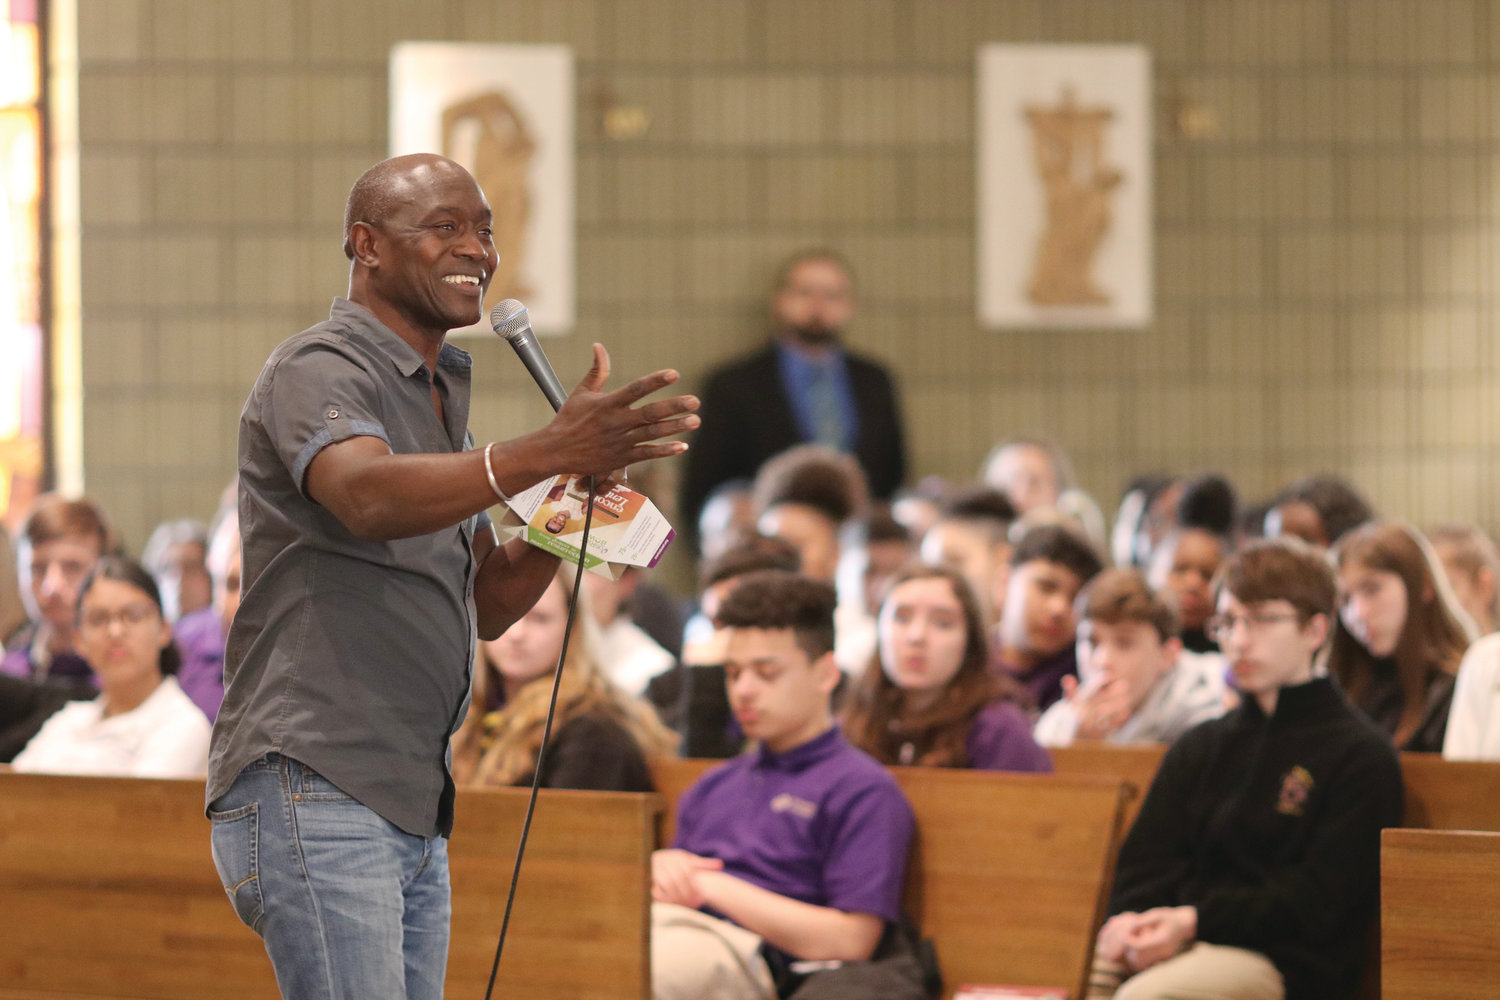 Thomas Awiapo speaks to students at St. Raphael Academy about his experiences growing up as an orphan in Ghana in which he was rescued from extreme hunger through his participation in an education initiative sponsored through the CRS Rice Bowl program.